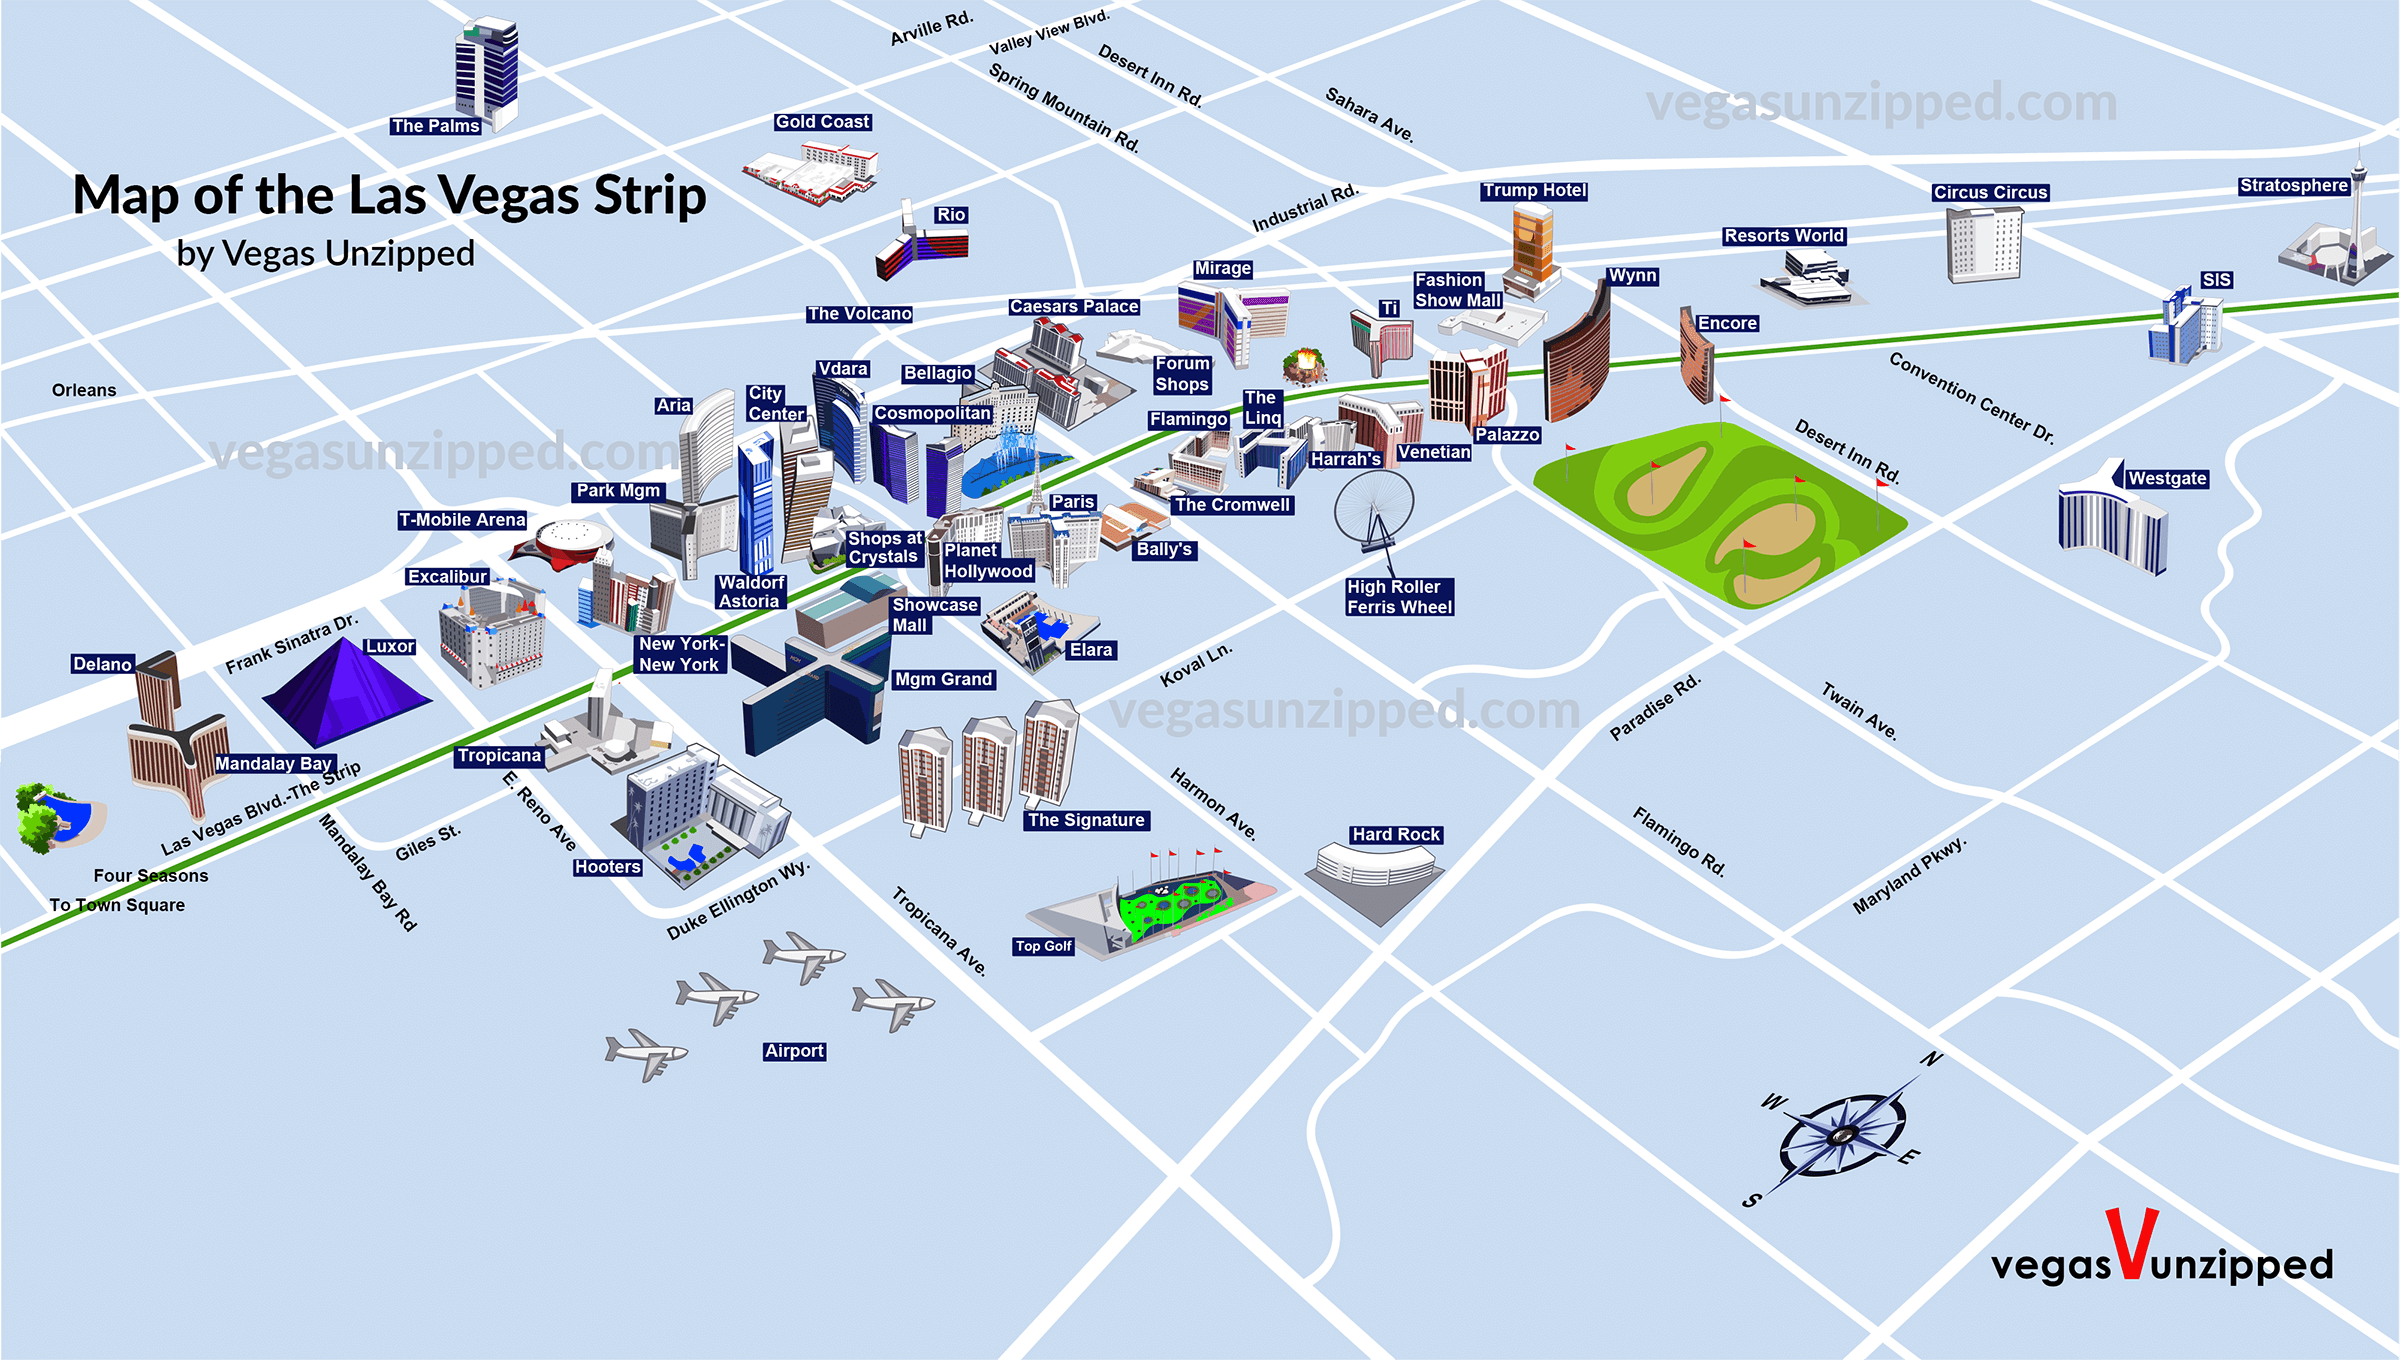 Vegas Map Strip Las Vegas Strip Map   Casino Hotel Maps [2019 ]   PDF, 3D, Download